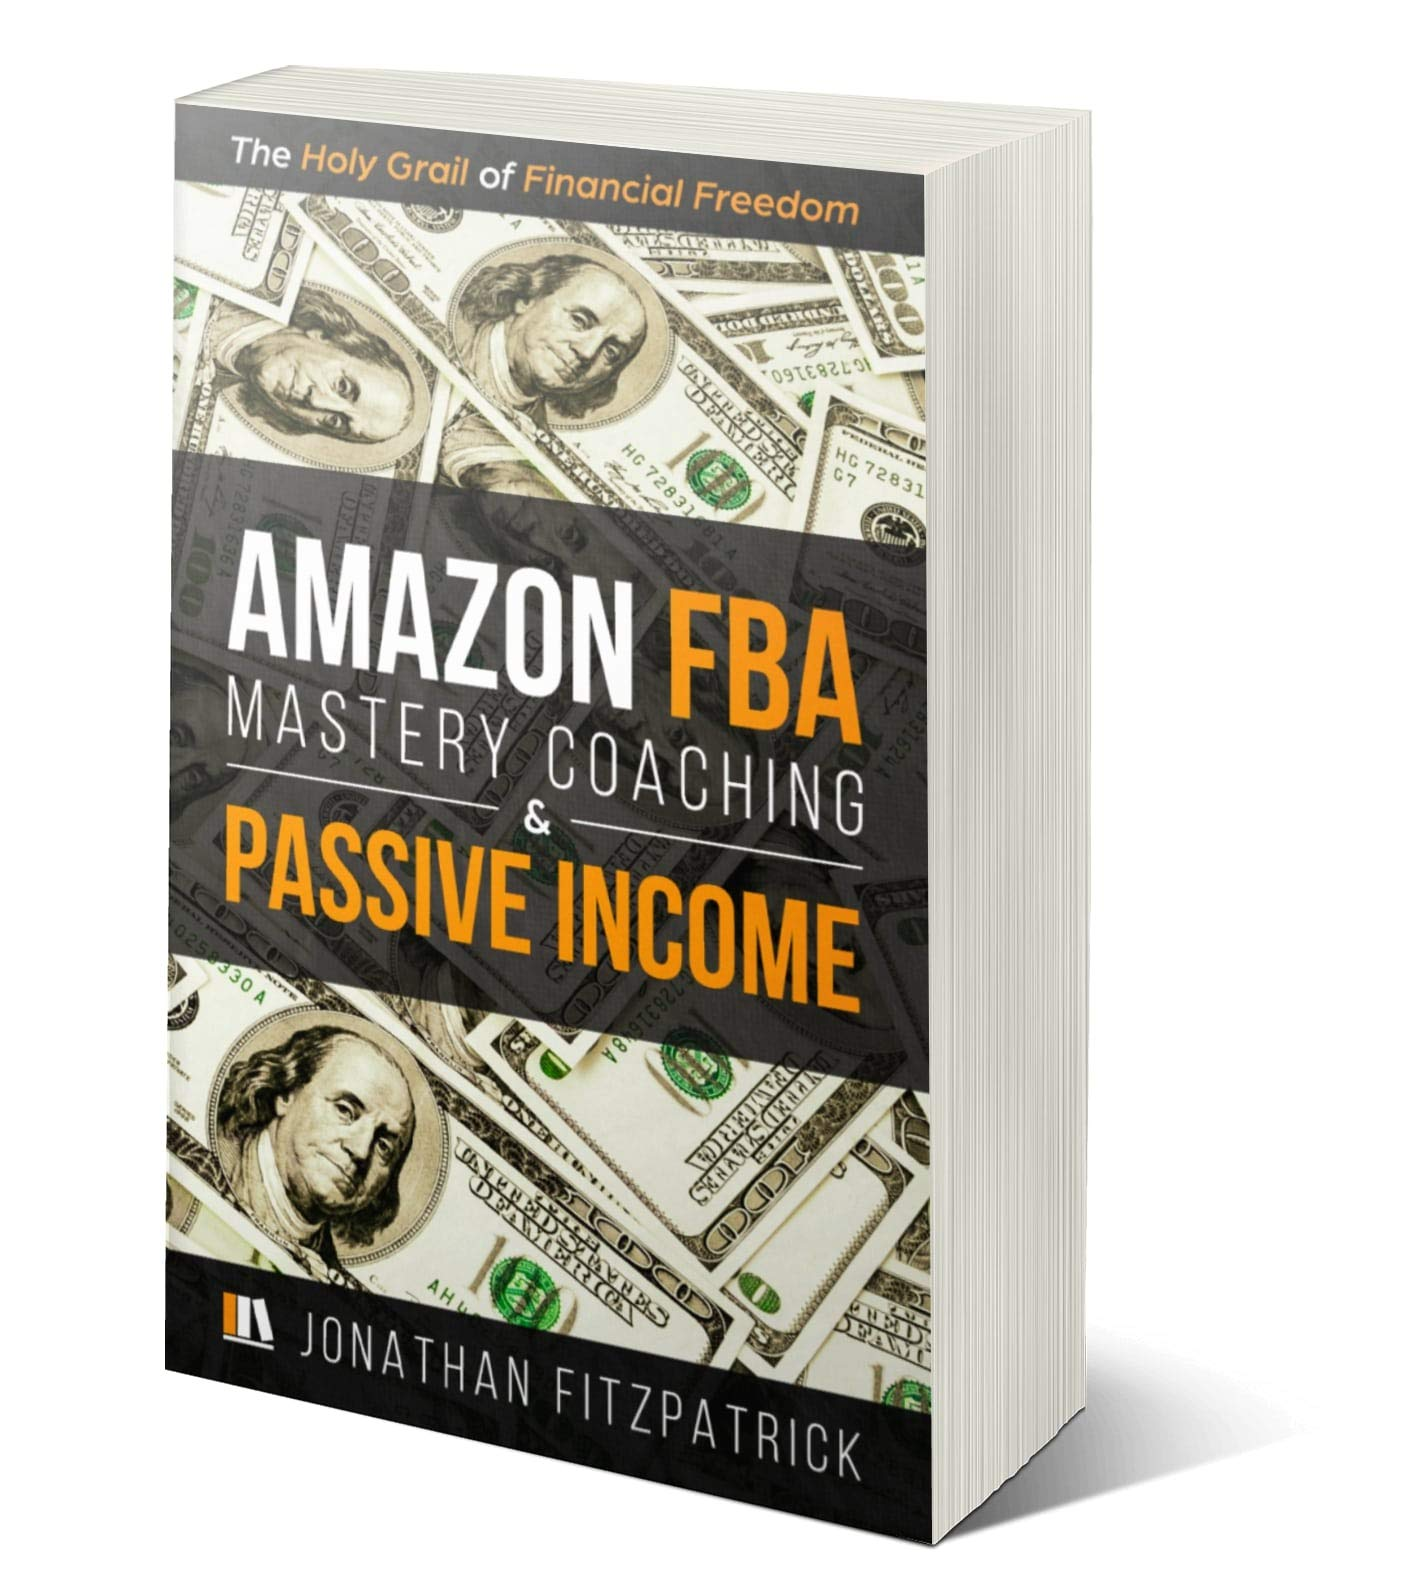 Amazon FBA Mastery Coaching And Passive Income  The Holy Grail Of Financial Freedom  English Edition